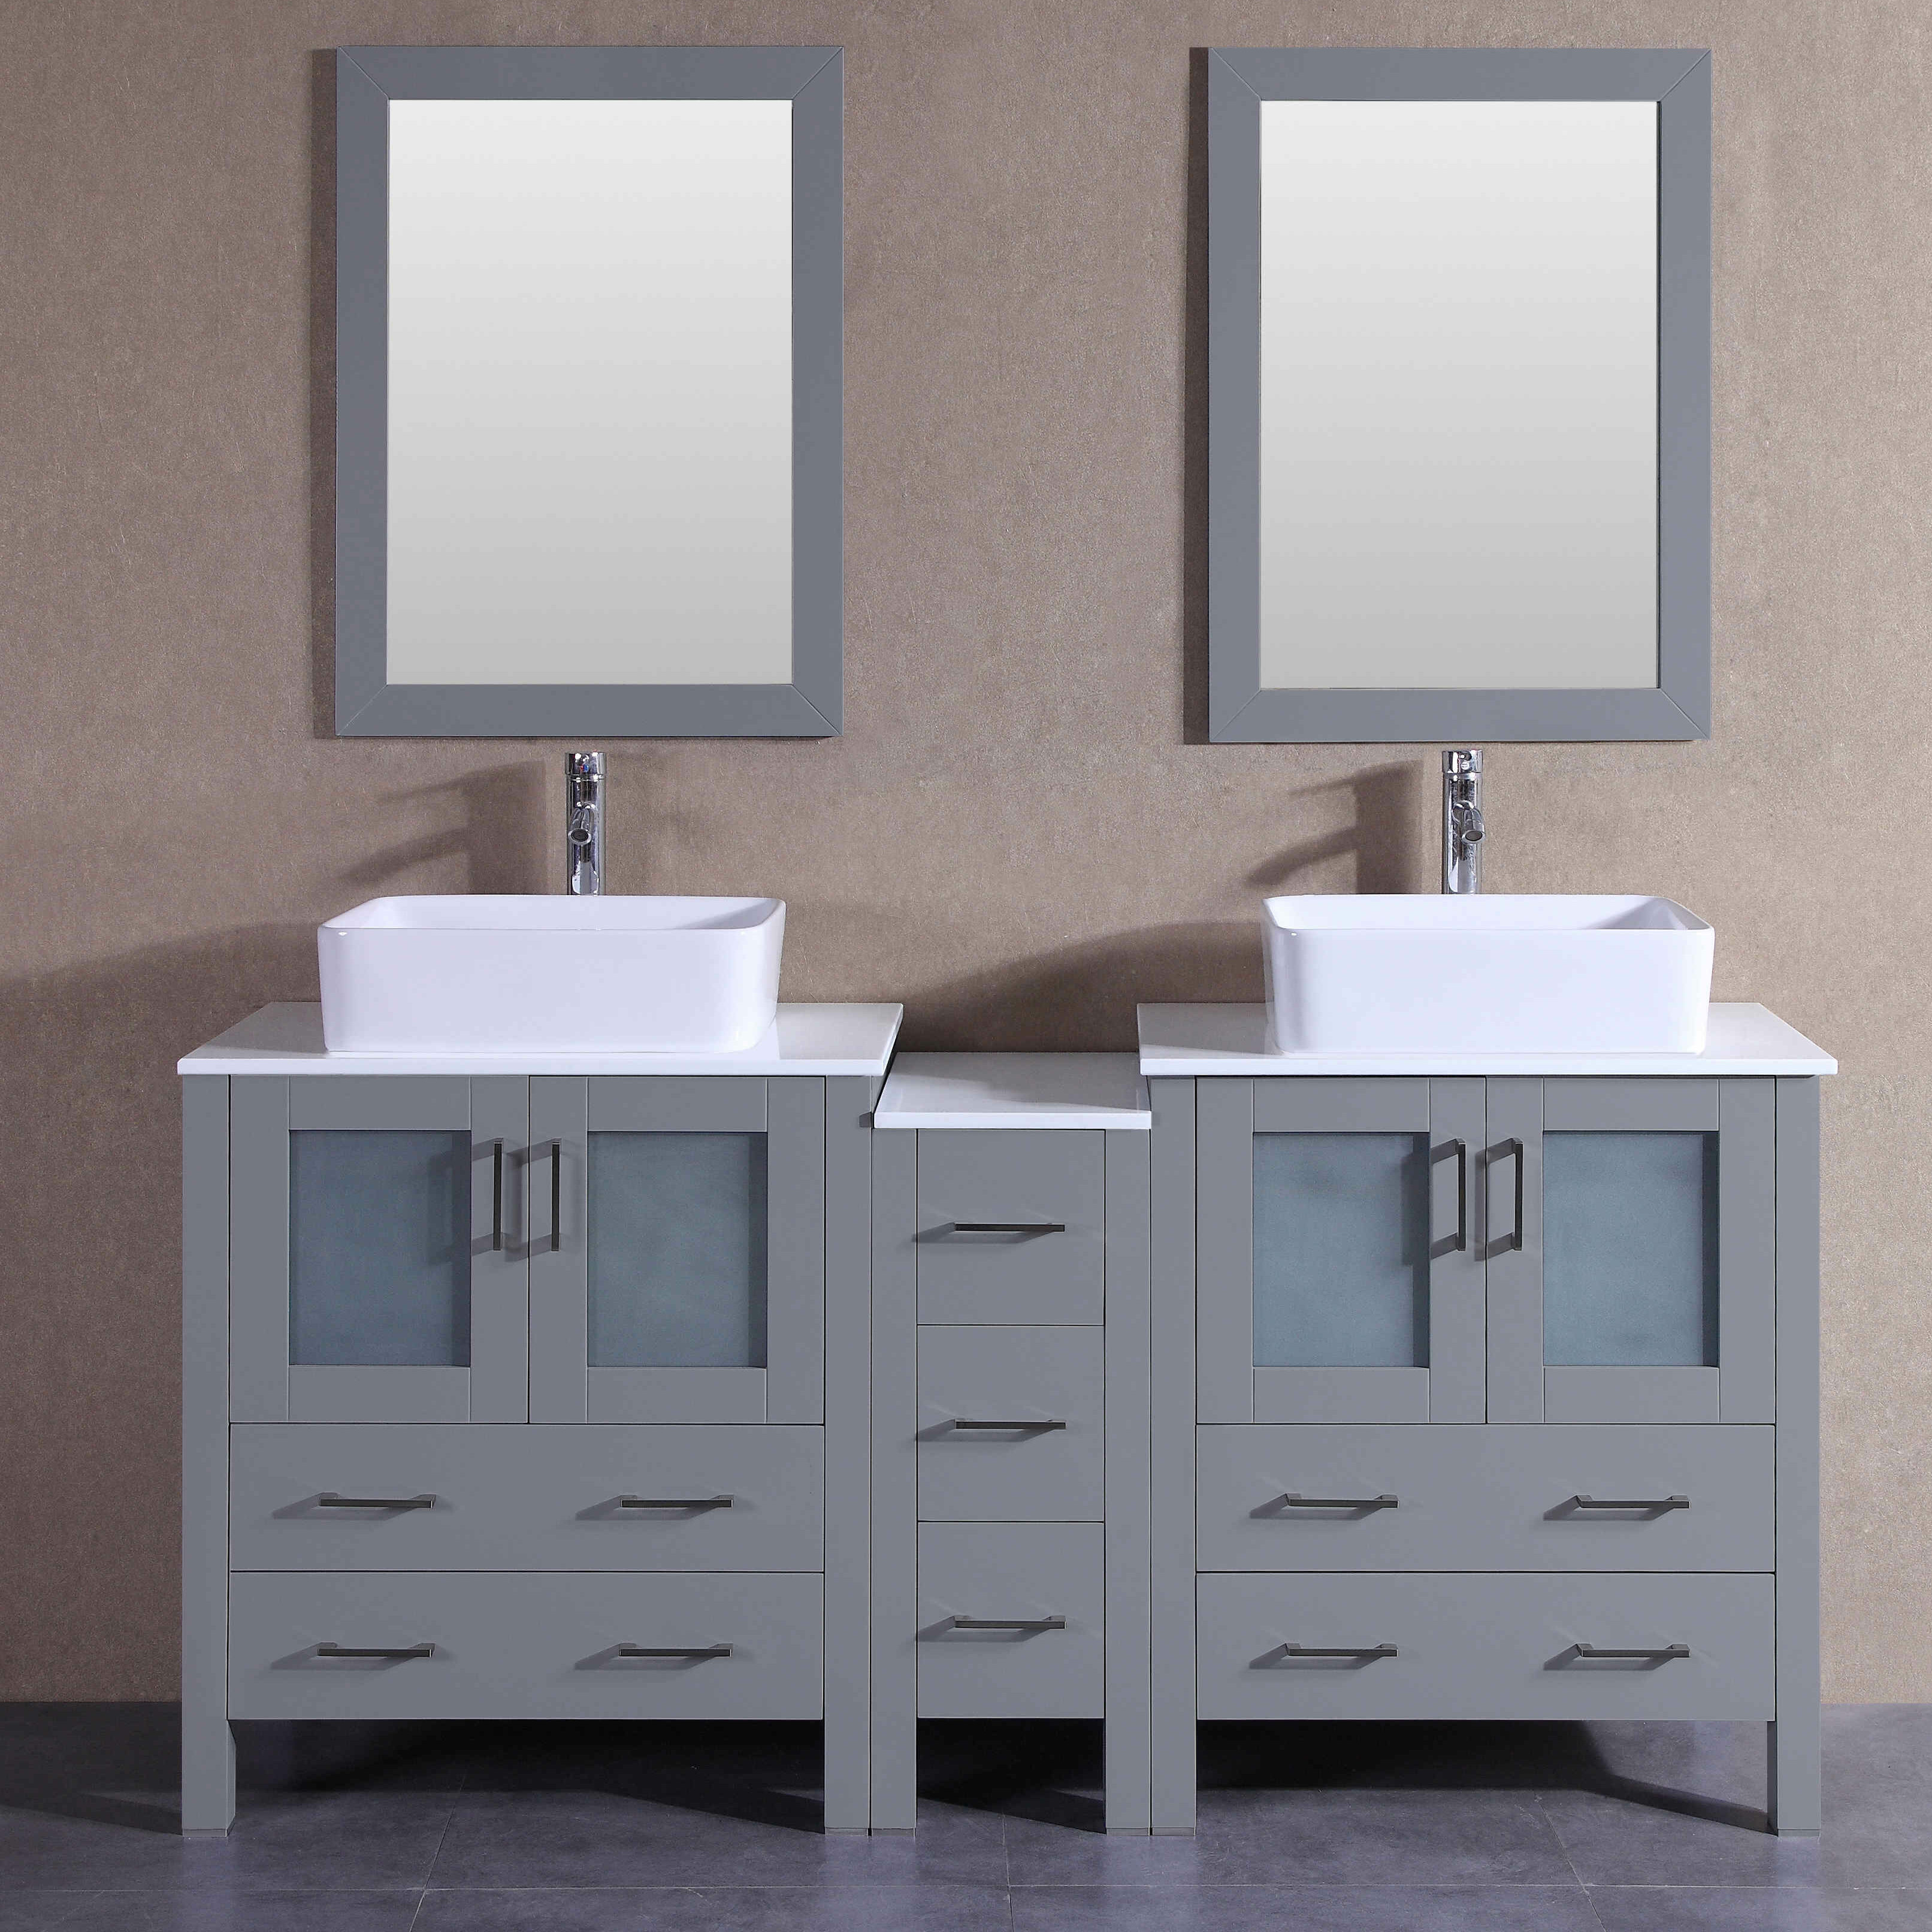 Luxury Bathroom Vanity with Two Side Cabinets